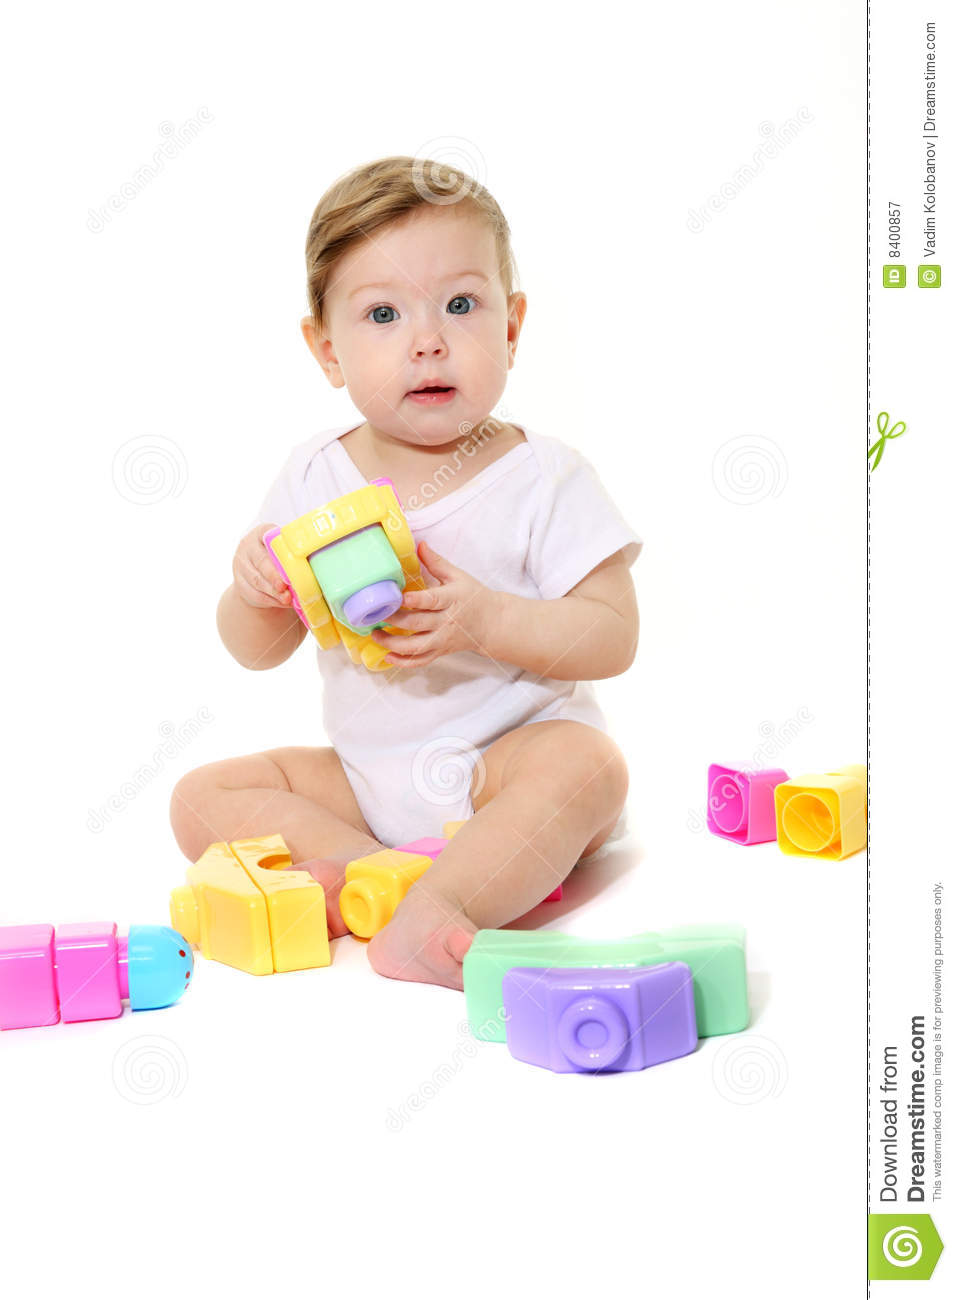 Play With Patterns Prints And Lots Of Accessories For: Baby Playing With Colored Blocks Royalty Free Stock